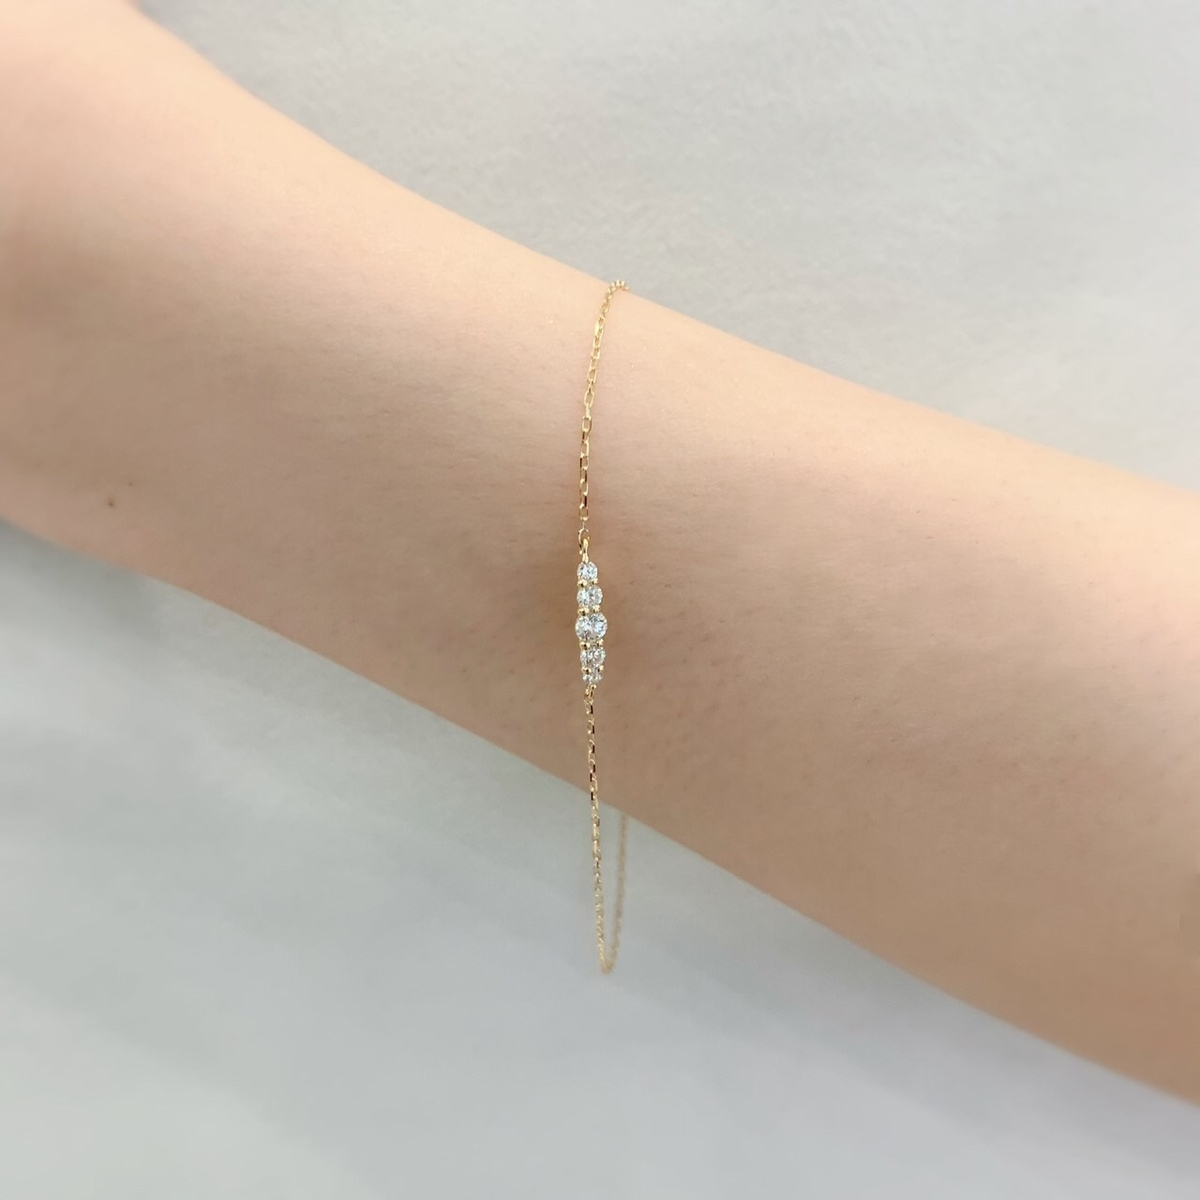 f:id:snow-jewelry-terrace:20190621144953j:plain